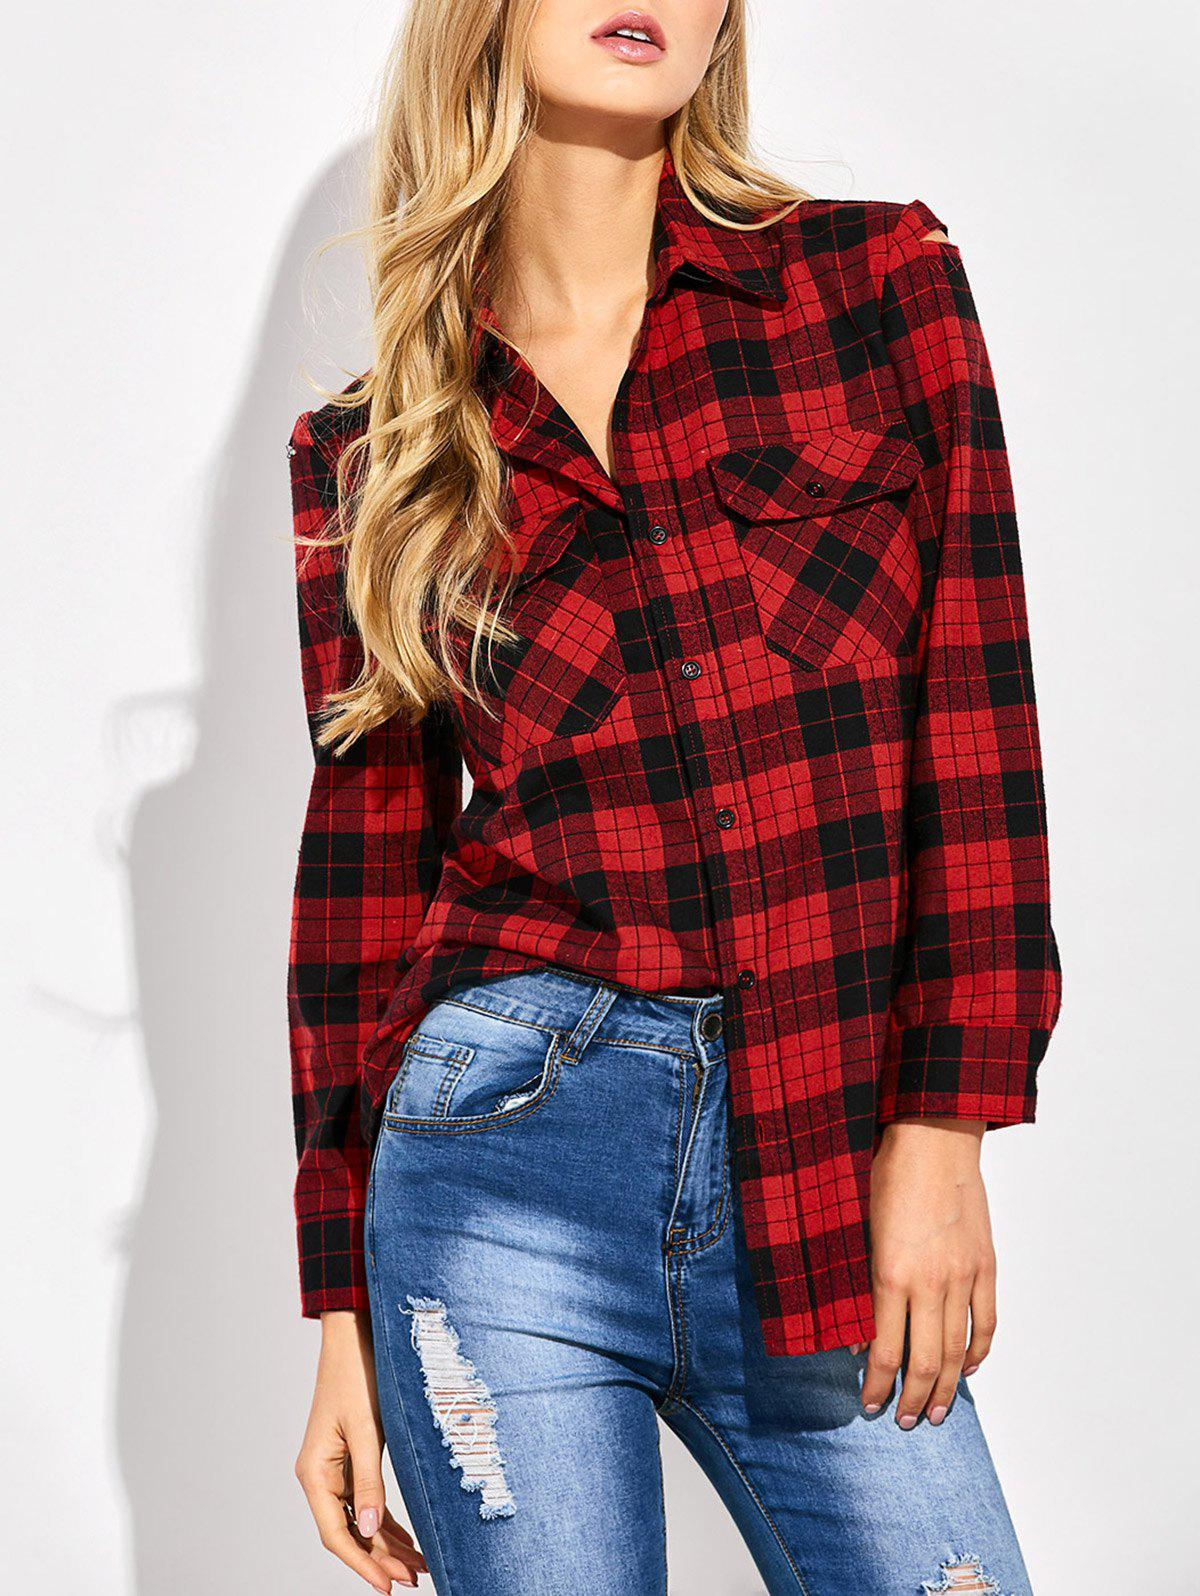 Casual Tartan Check Oversized Shirt - RED/BLACK S